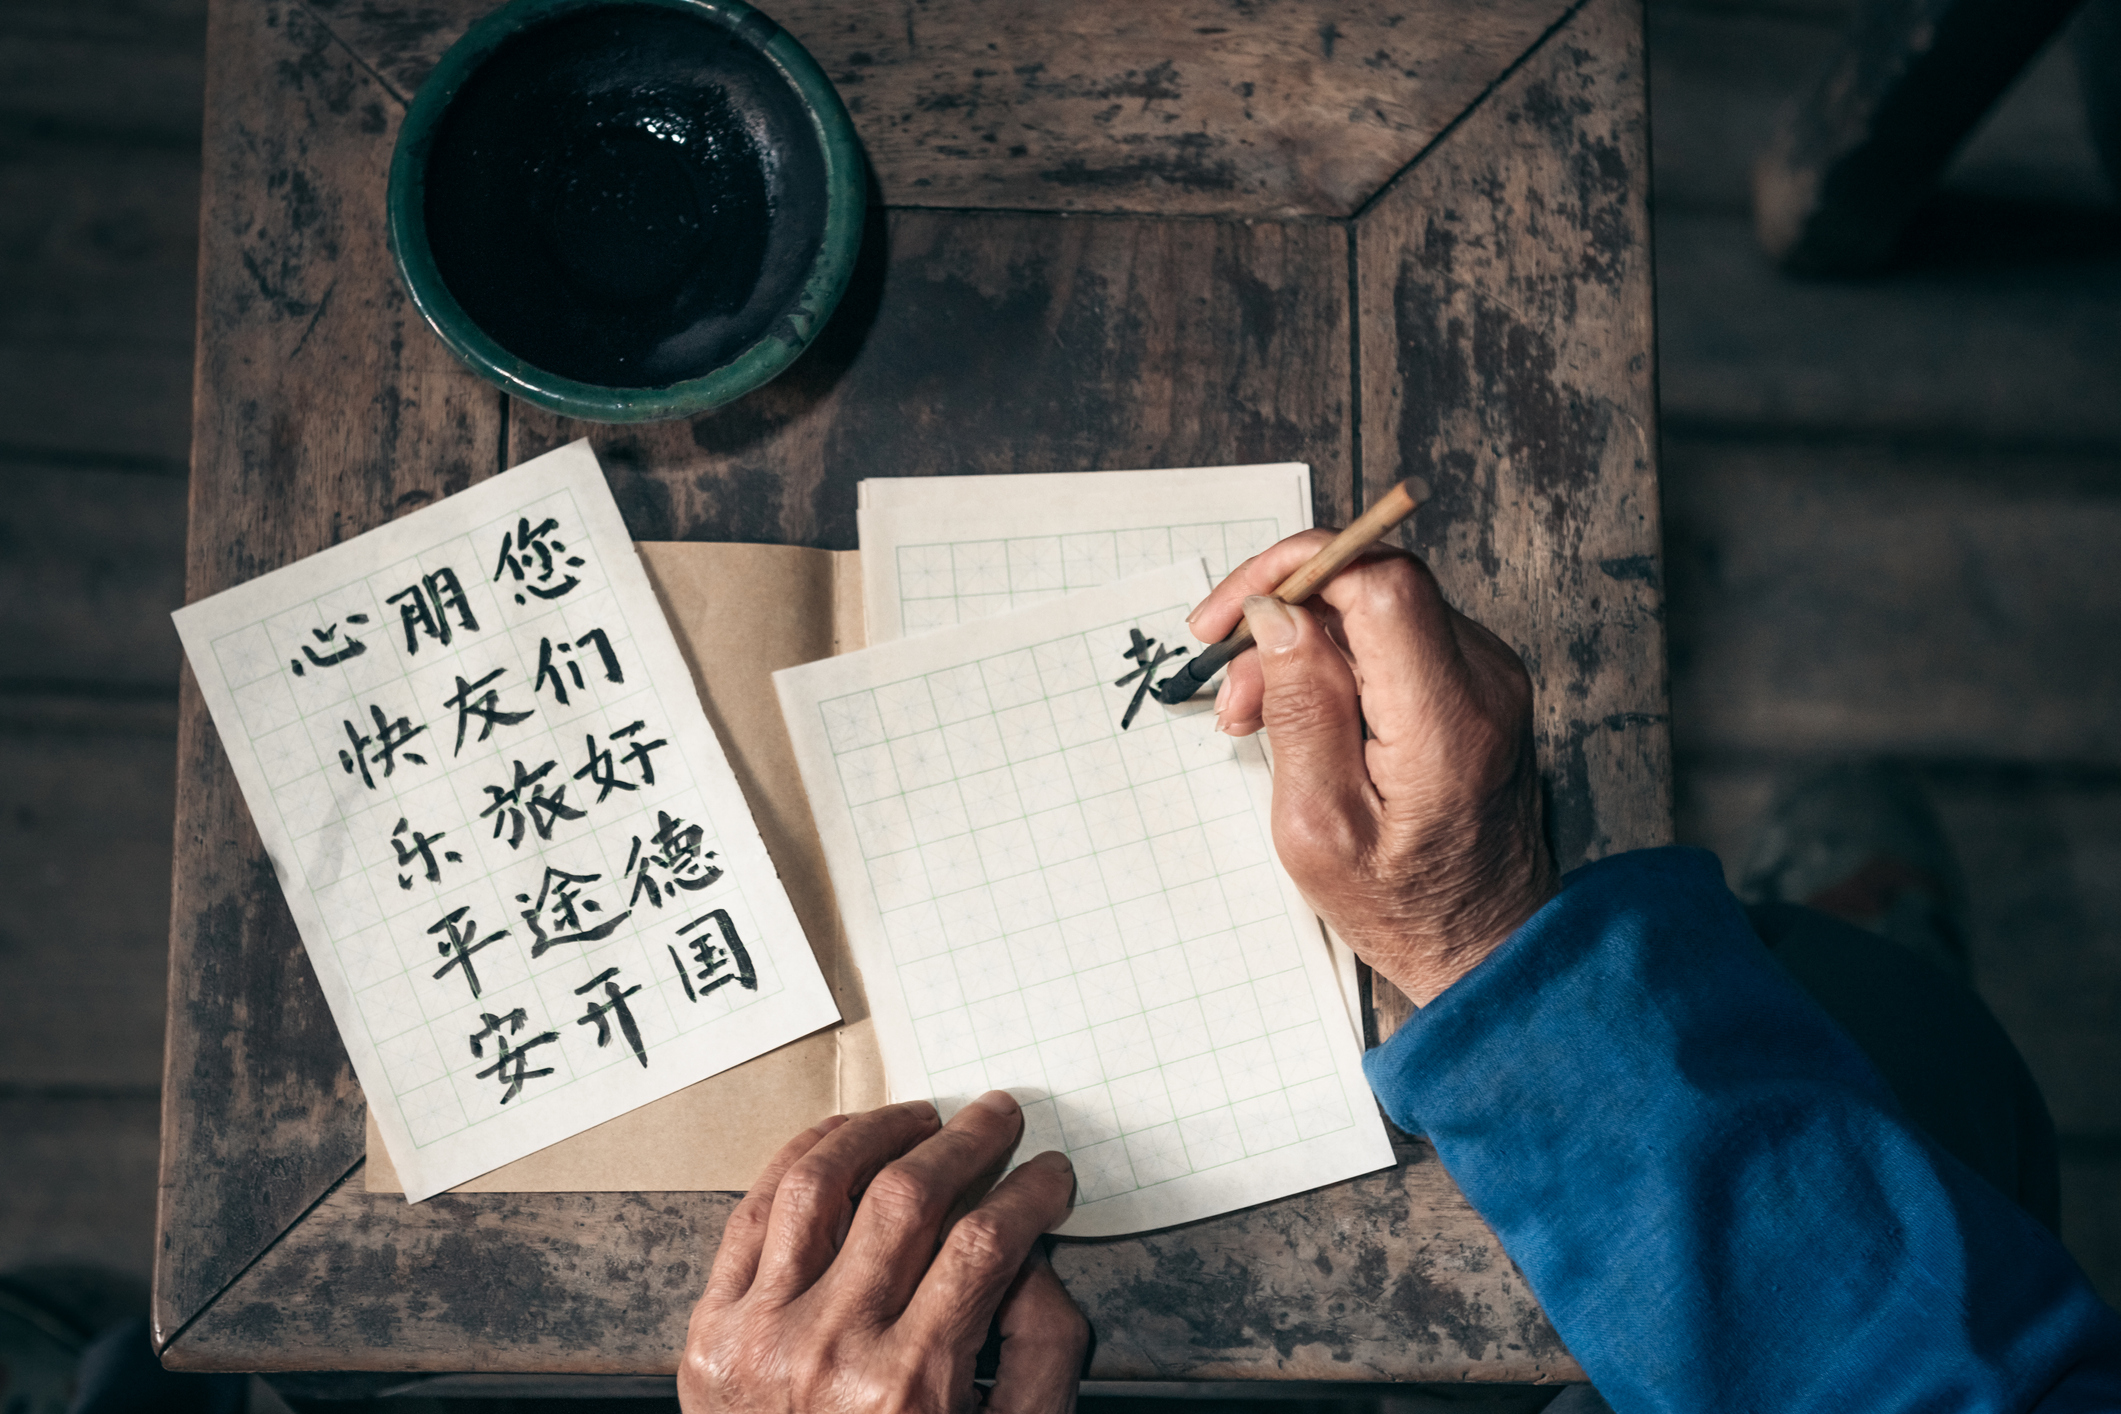 Chinese senior man writing Chinese calligraphy characters on paper.